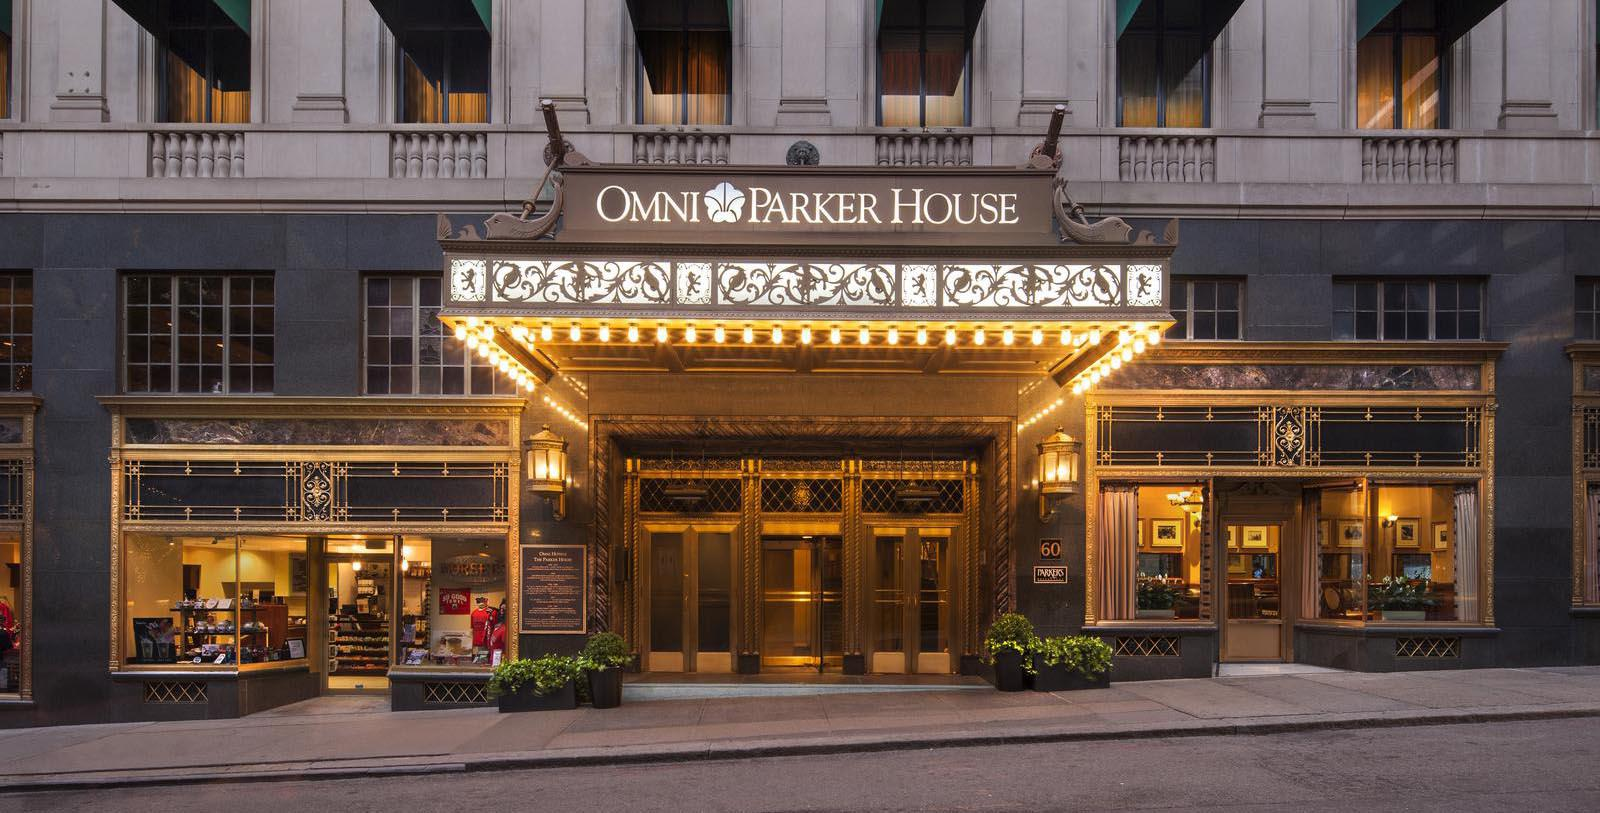 Image of Exterior & Entrance, Omni Parker House, Boston, Massachusetts, 1855, Member of Historic Hotels of America, Special Offers, Discounted Rates, Families, Romantic Escape, Honeymoons, Anniversaries, Reunions